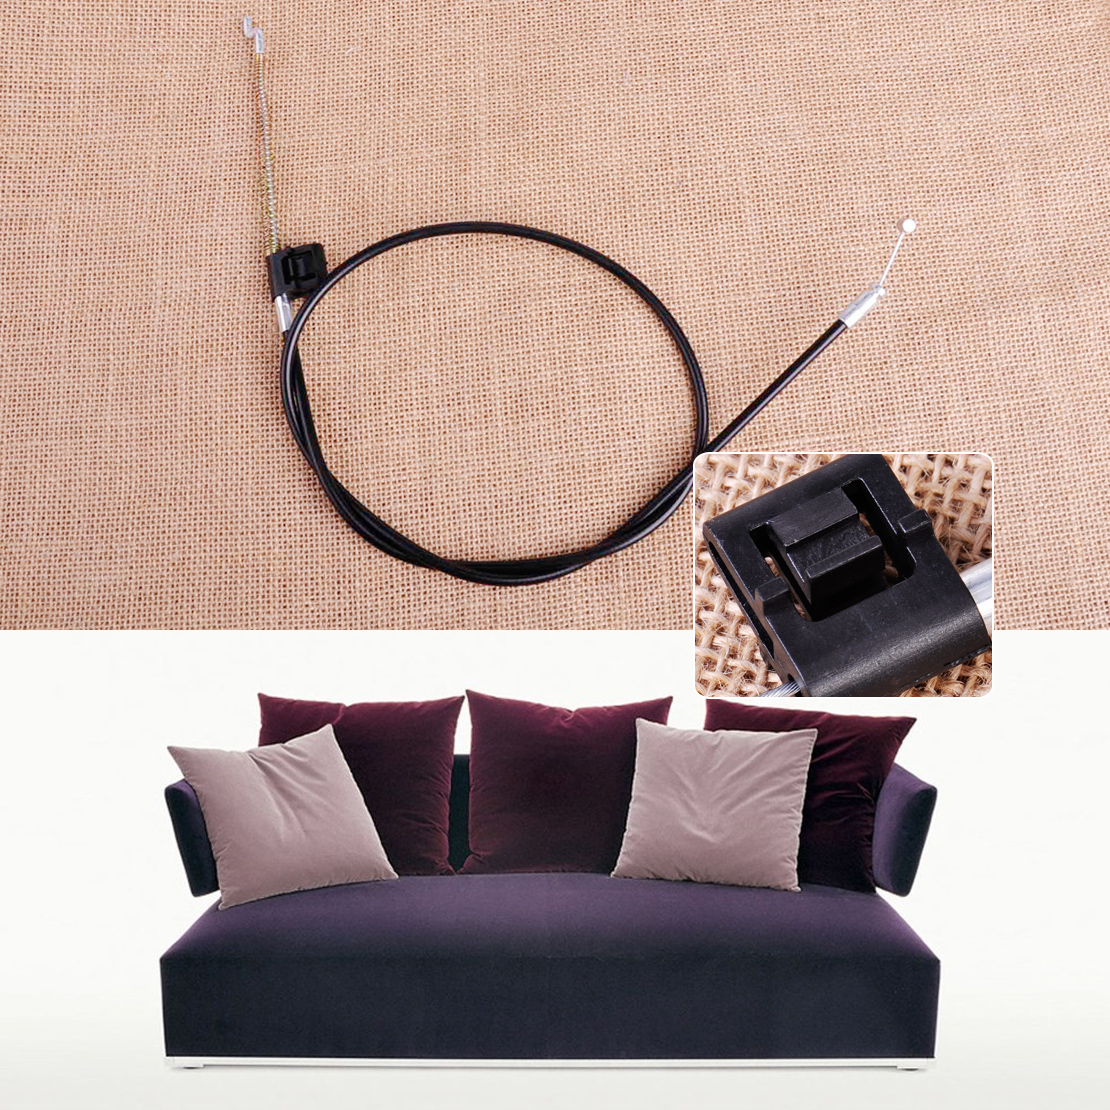 New Metal Recliner Chair Sofa Handle Cable Couch Release Lever Replacement Cable Accessibility 2 pcs set durable metal handle recliner chair sofa couch release lever replacement pull handle part black suite recliner